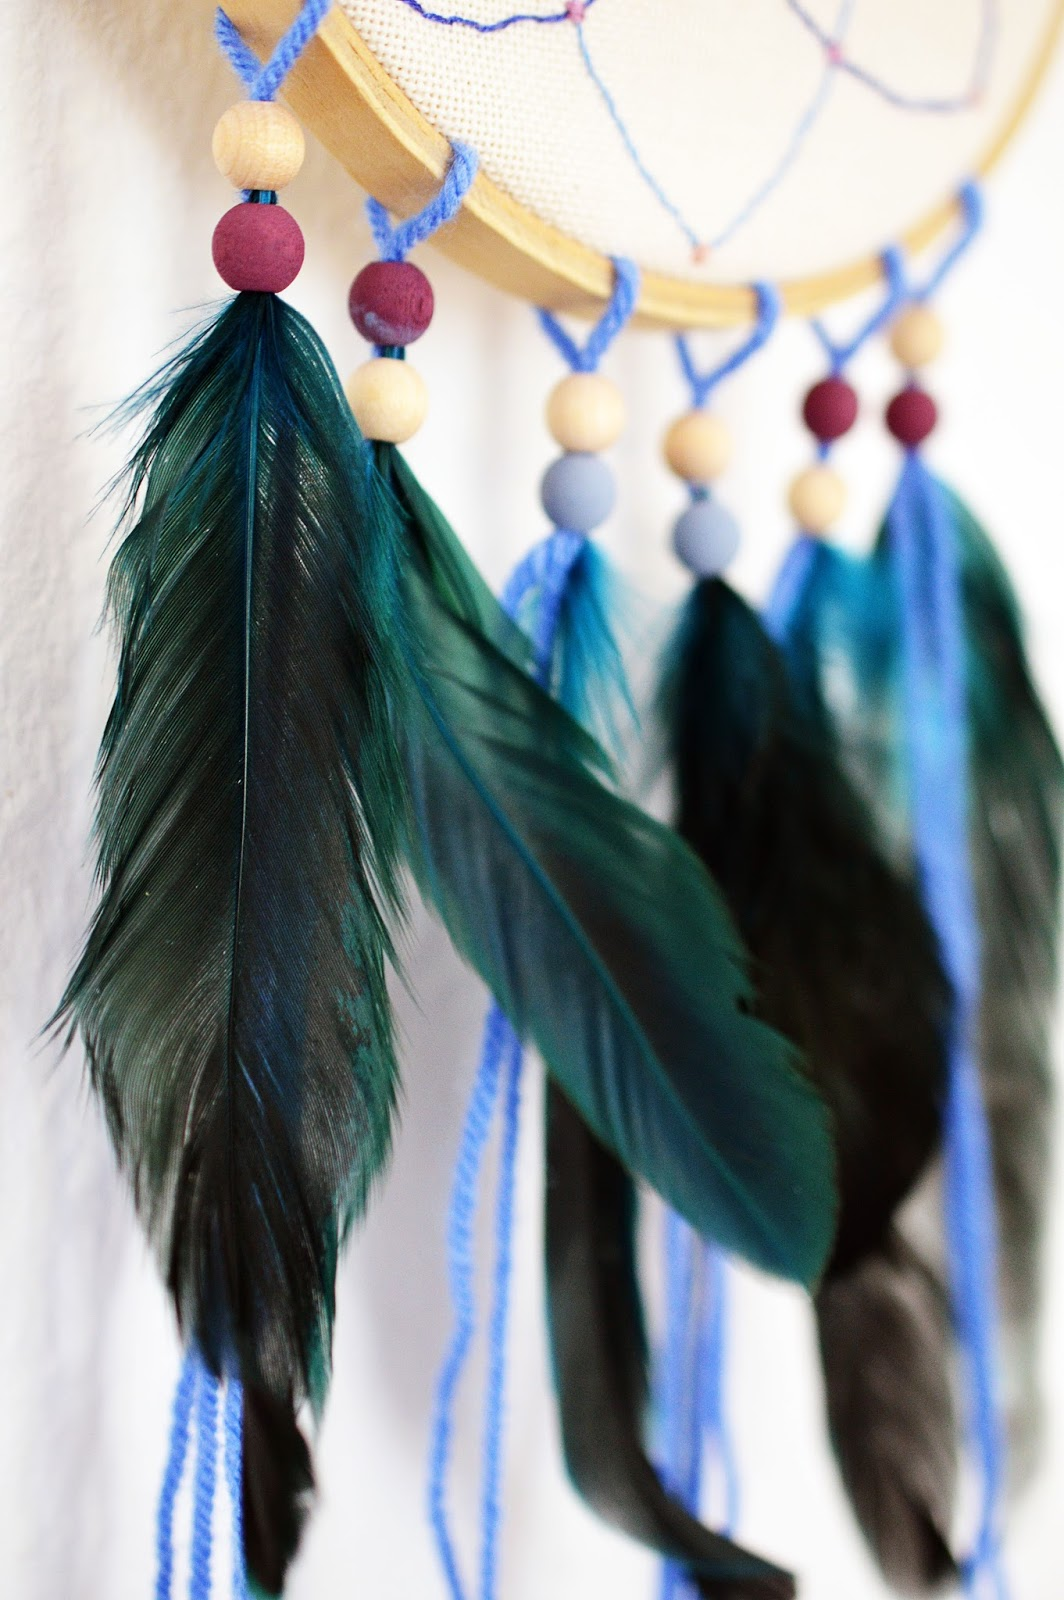 DIY Embroidery Hoop Dreamcatcher | Motte's Blog